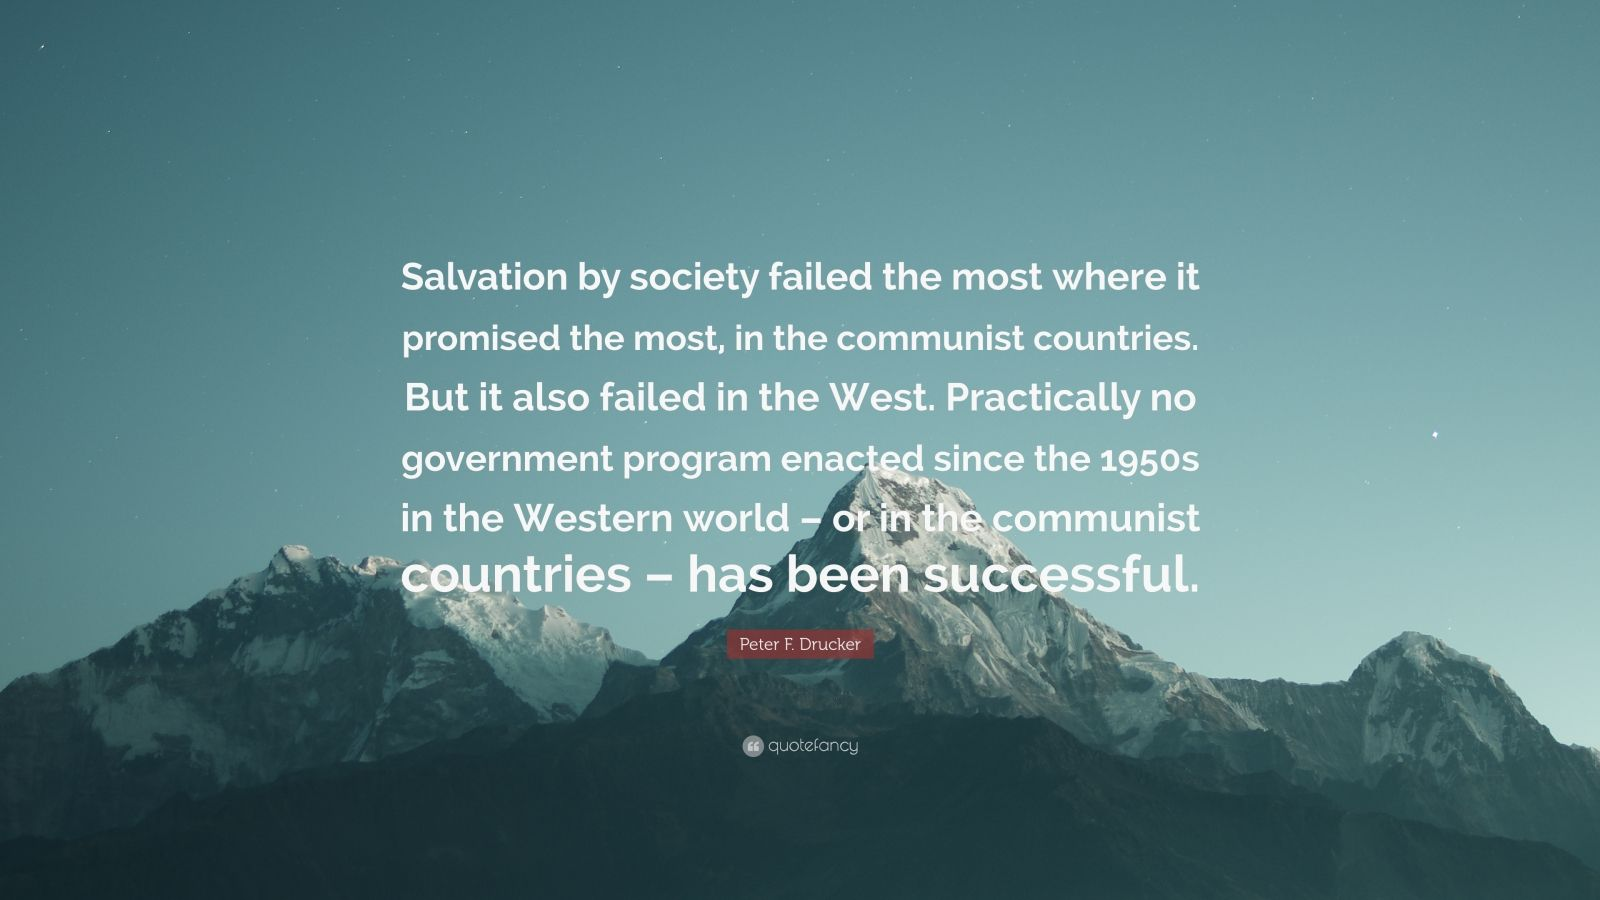 """Peter F. Drucker Quote: """"Salvation by society failed the most where it promised the most, in the communist countries. But it also failed in the West. Practically no government program enacted since the 1950s in the Western world – or in the communist countries – has been successful."""""""